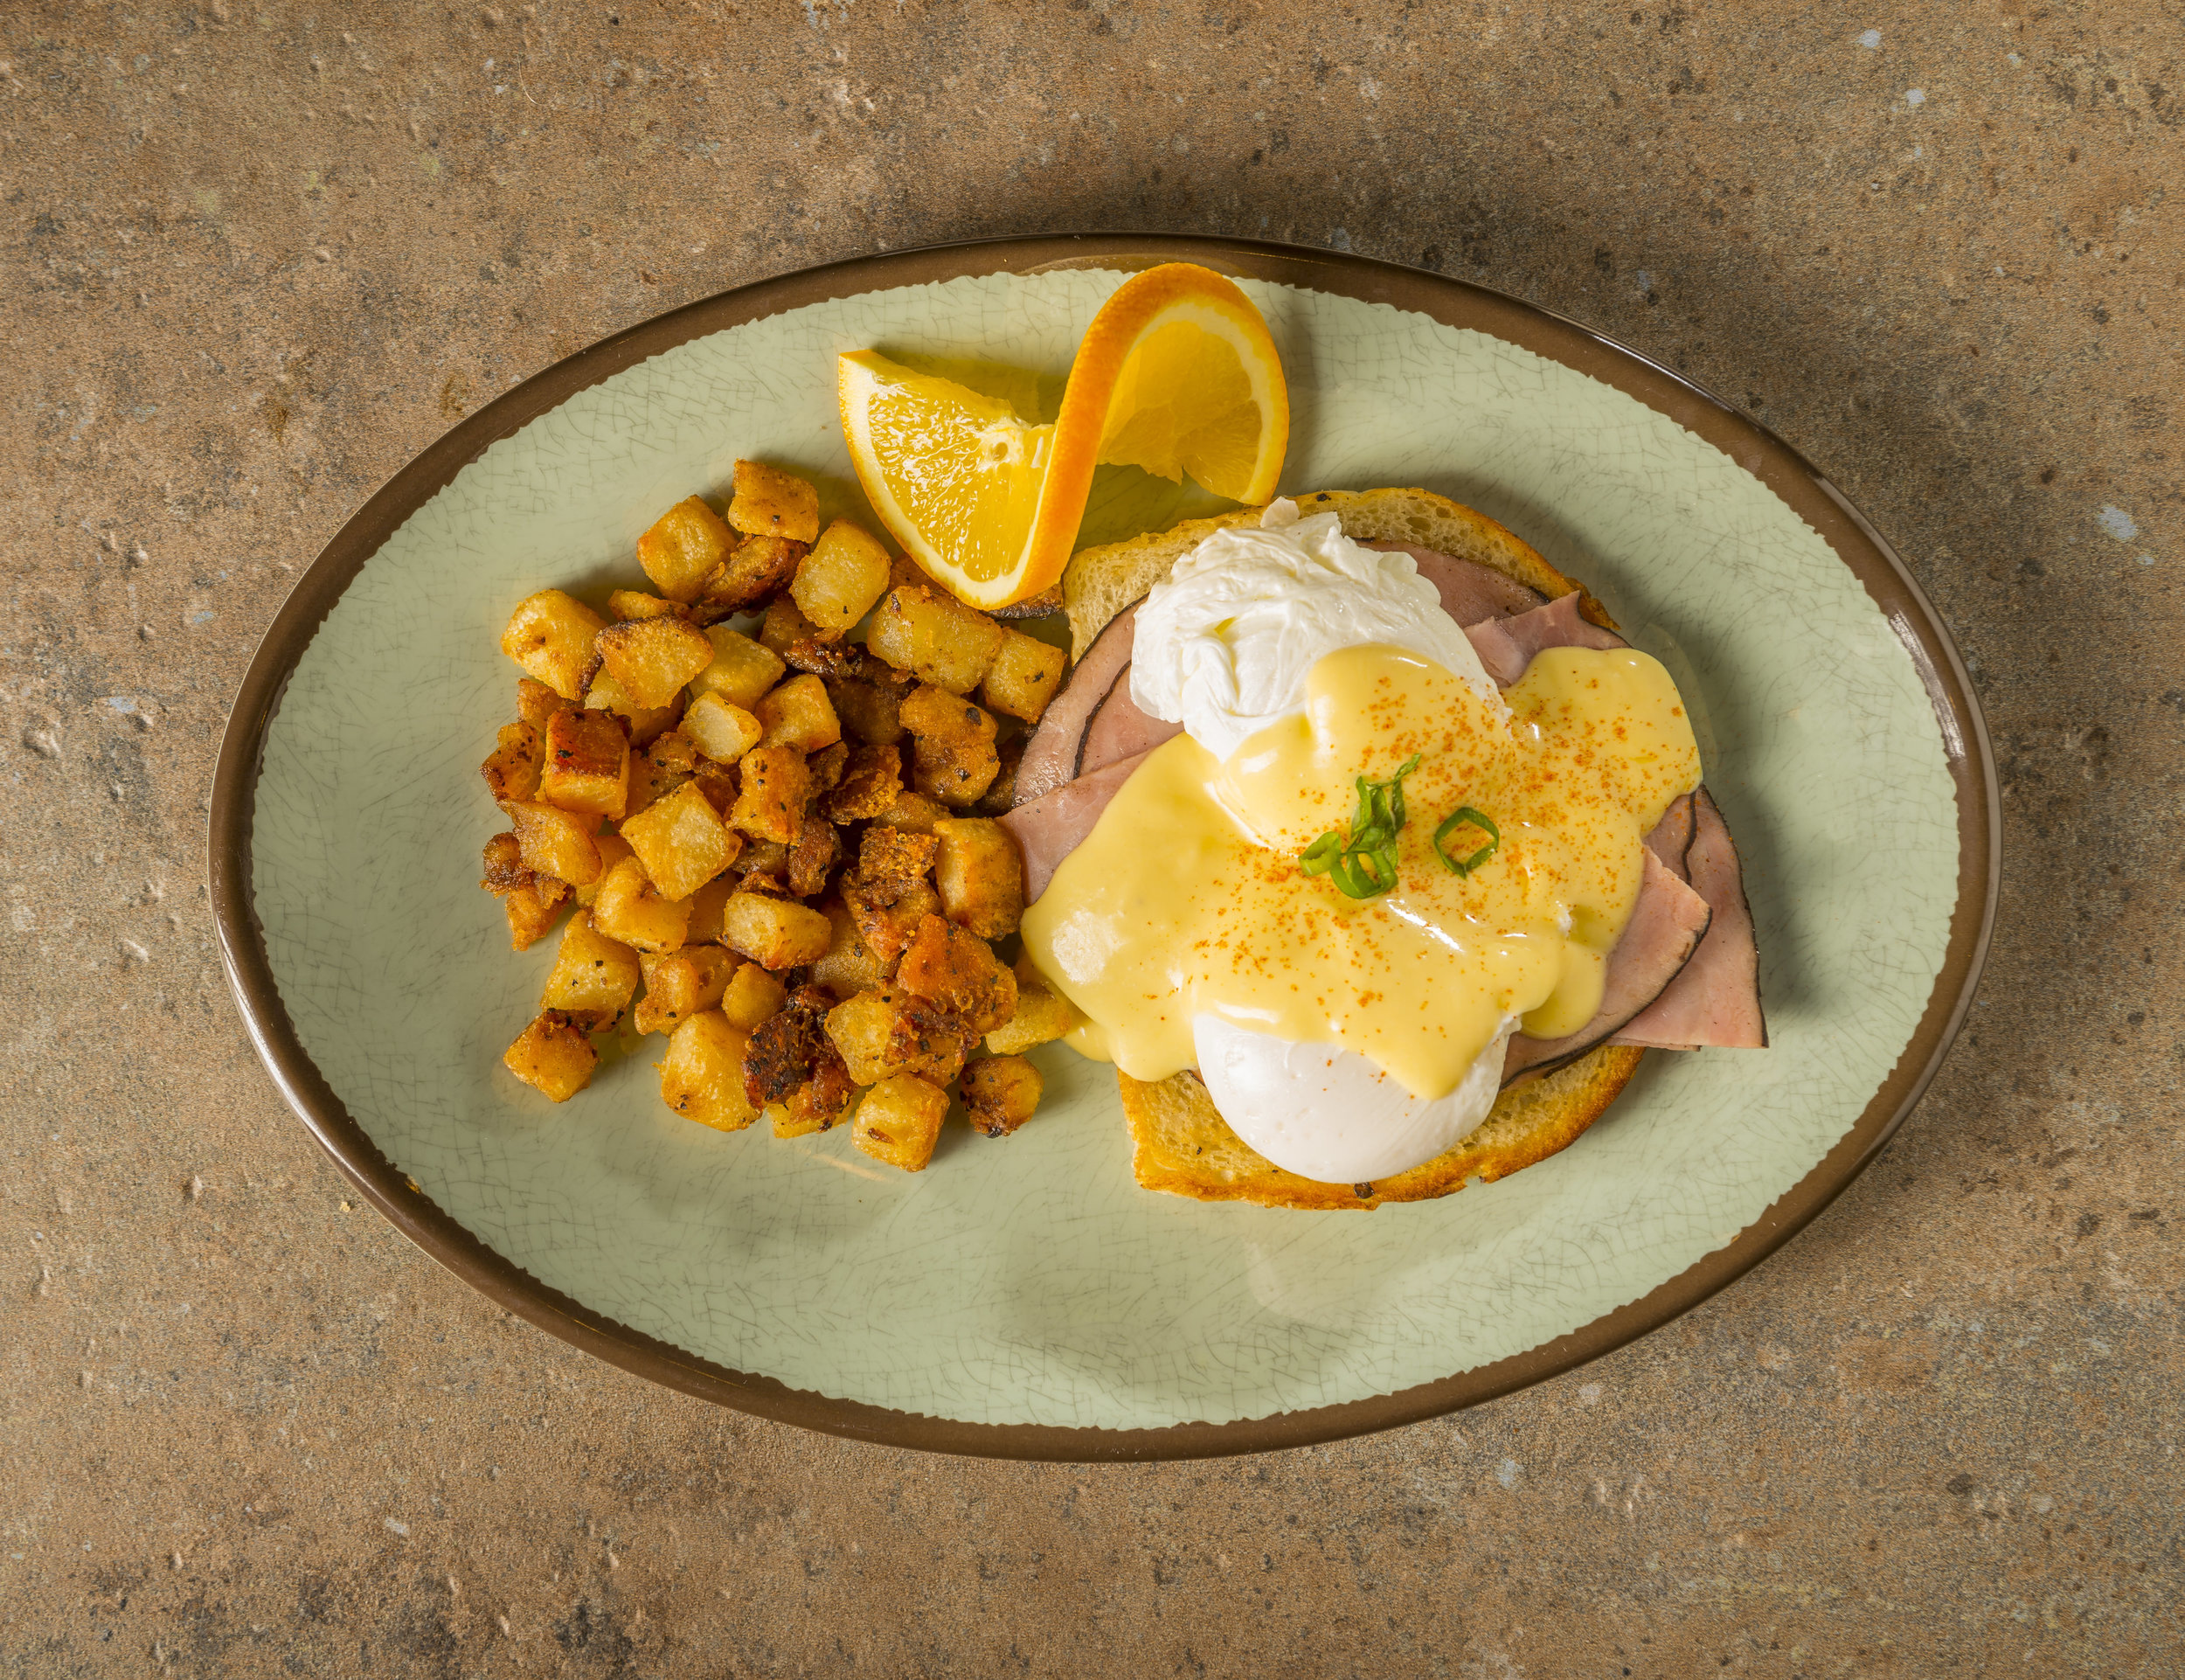 Classic Benedict - Black Forest ham, poached eggs, green onion, paprika, and Hollandaise on FTH sourdough.$9.99